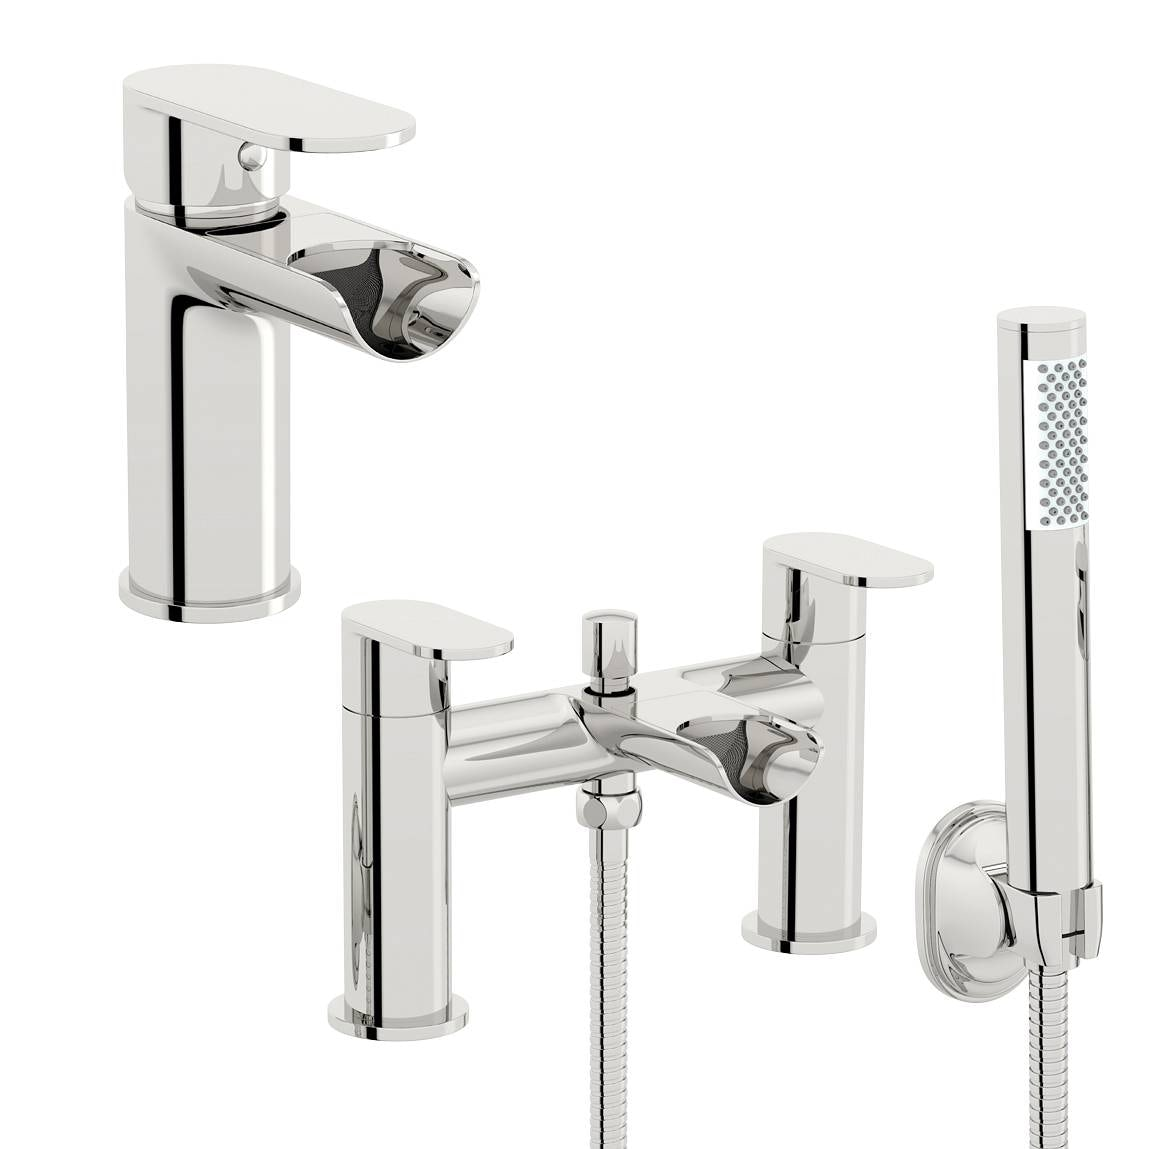 Orchard Eden basin and bath shower mixer tap pack